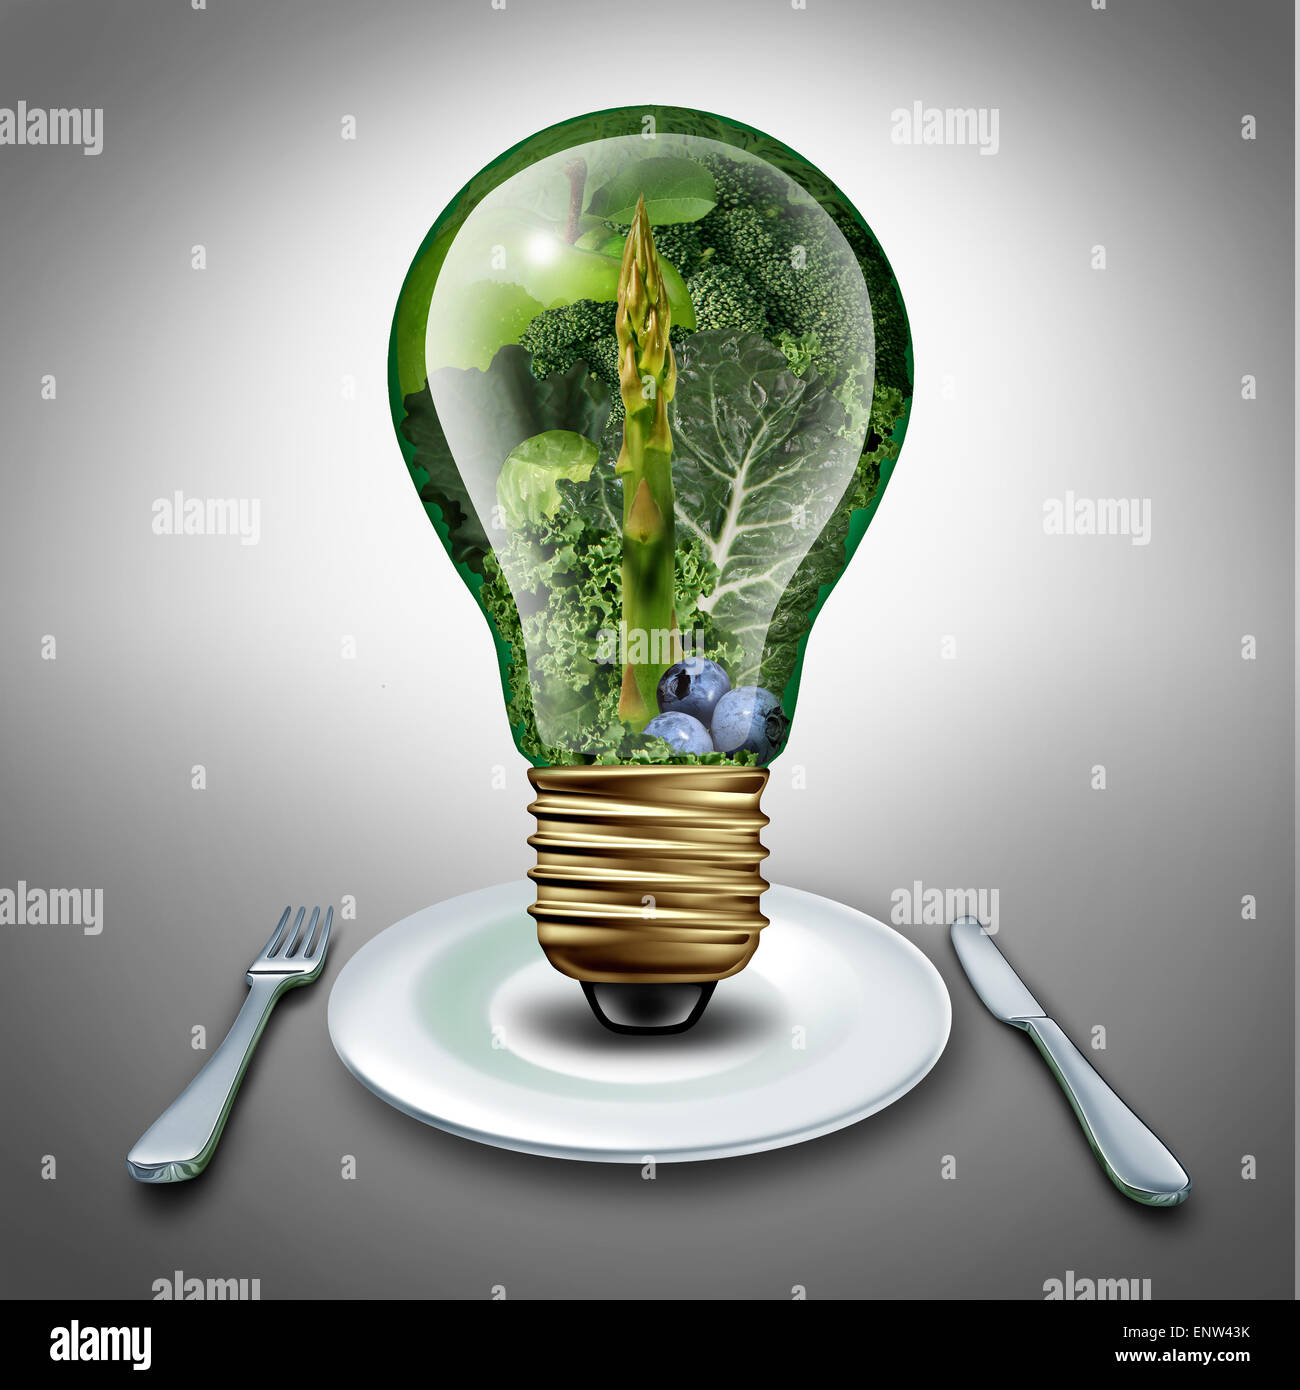 Eating healthy idea and diet tips concept as a lightbulb with fruits and vegetables inside as an inspiration symbol - Stock Image